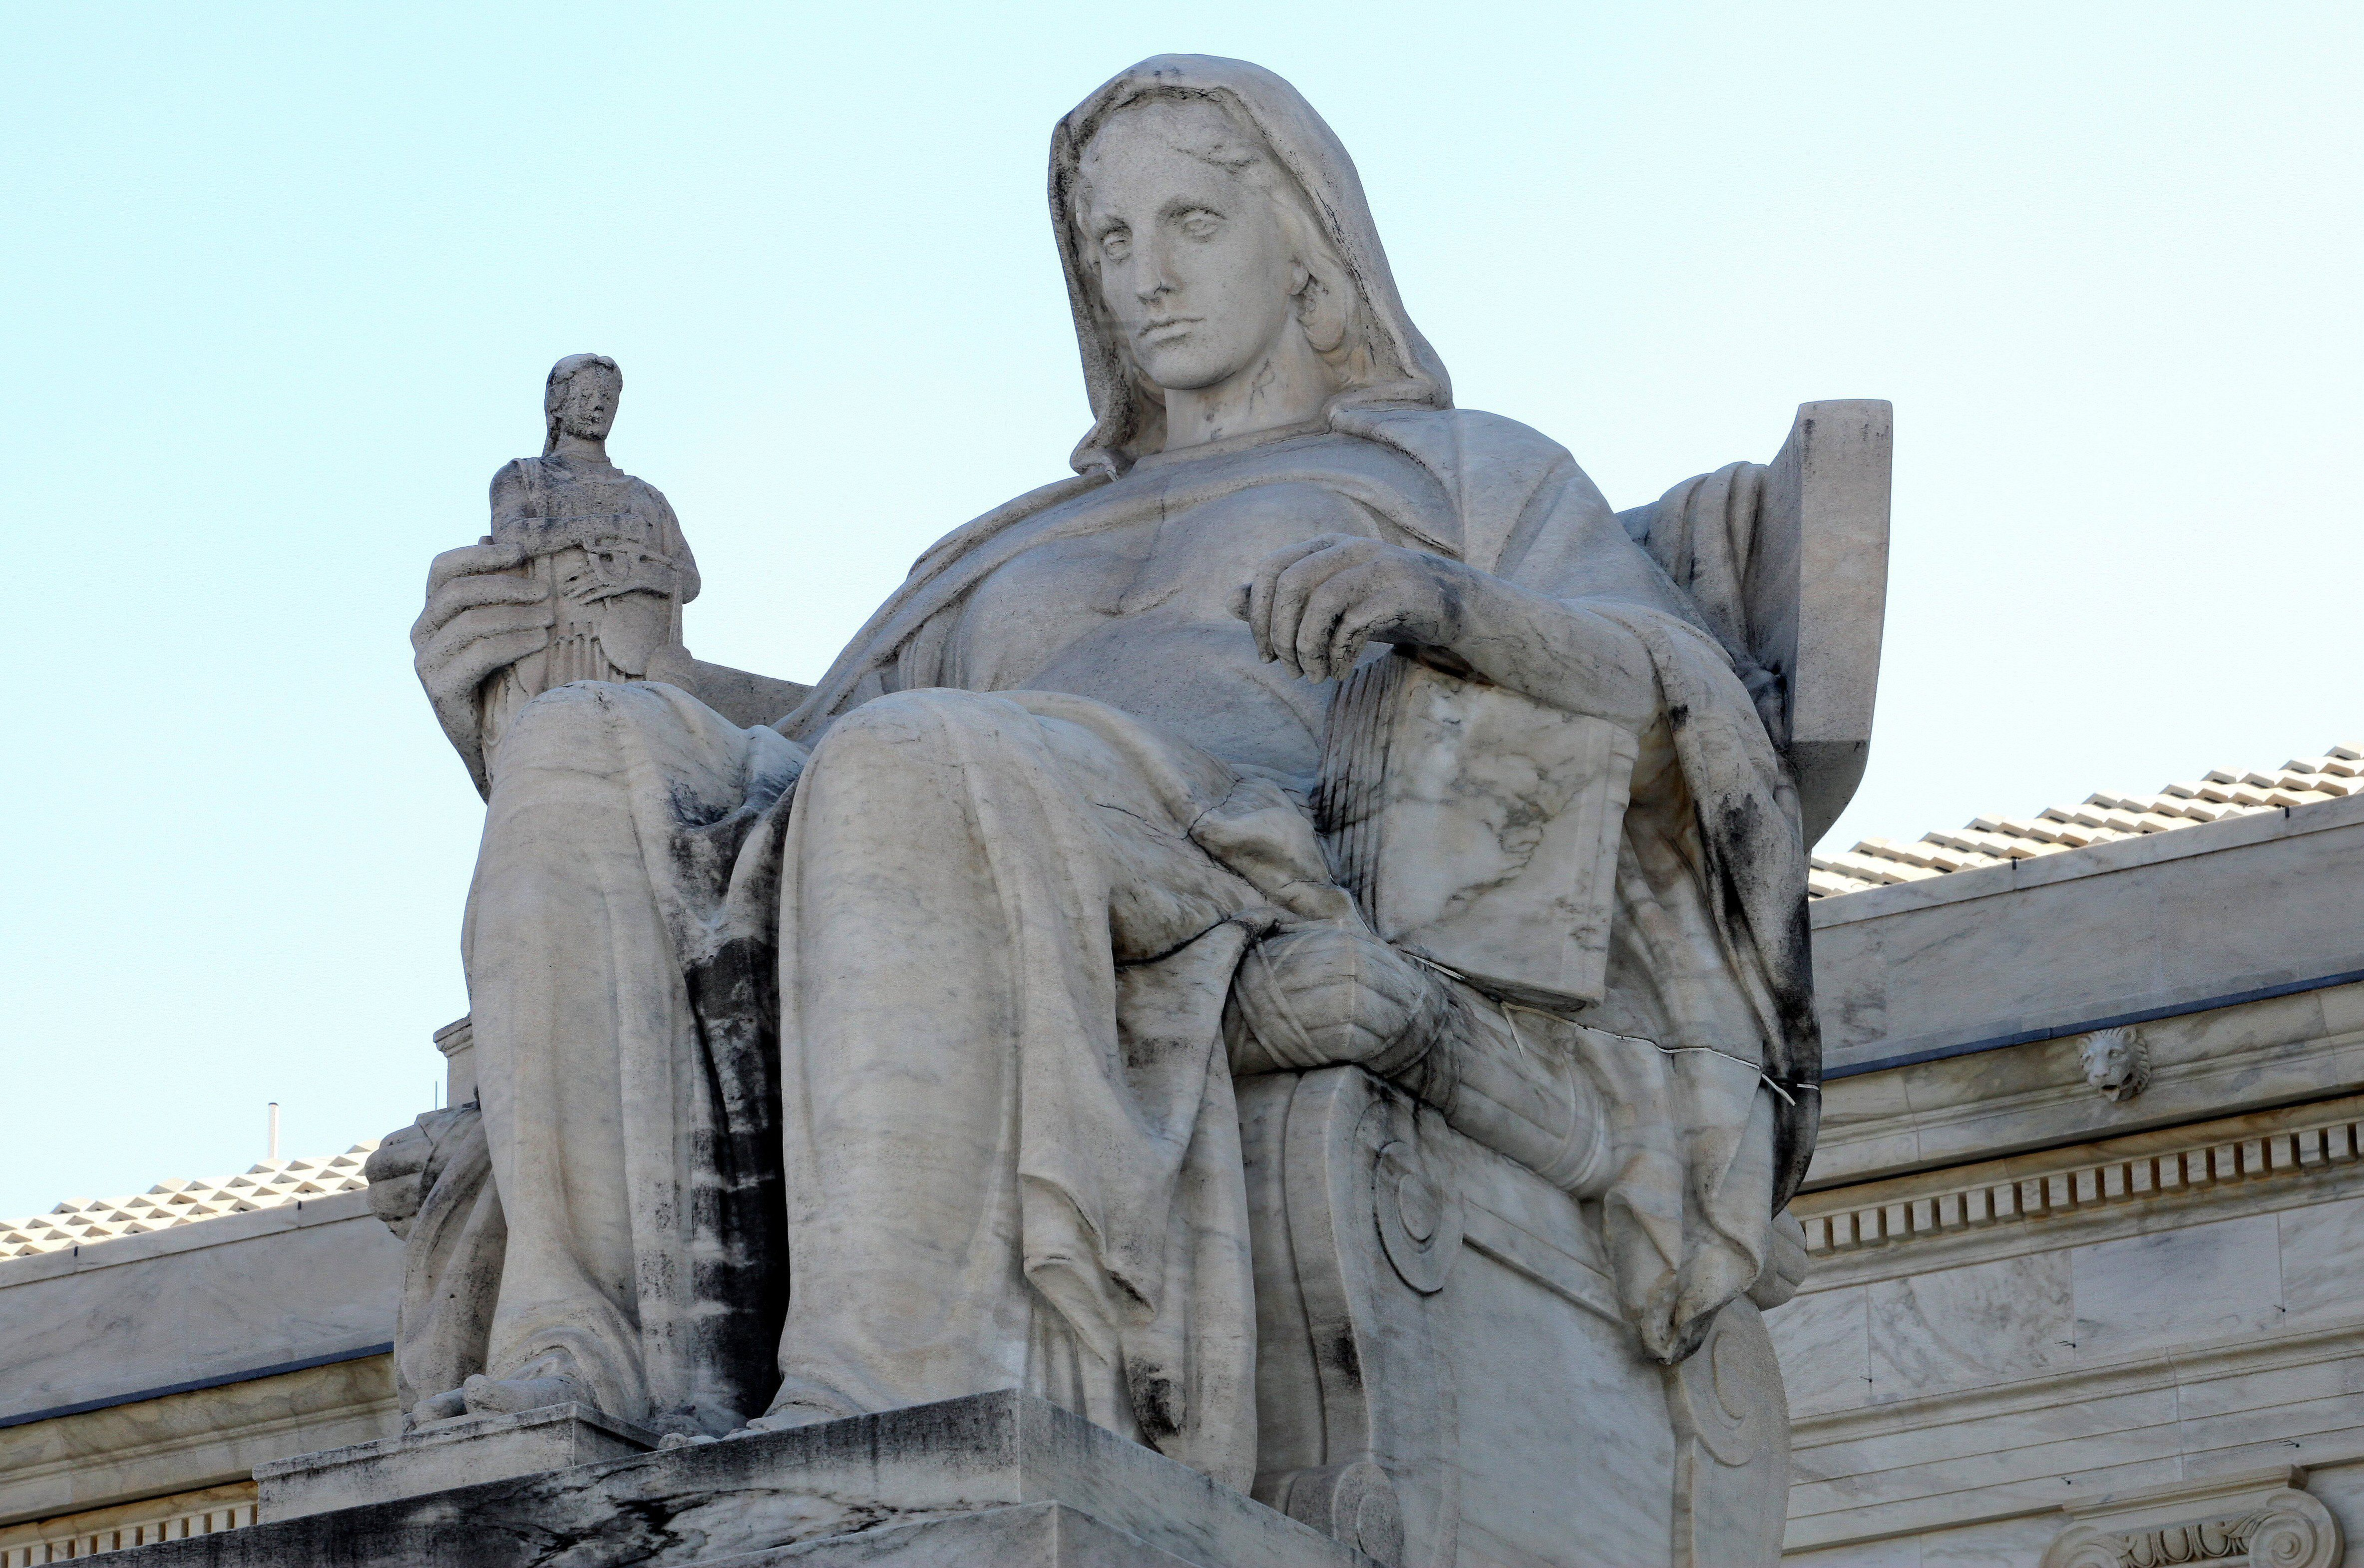 detail of an outdoor sculpture of a large female figure, with her left arm resting on a book of law, is thinking about the smaller female figure in her right hand